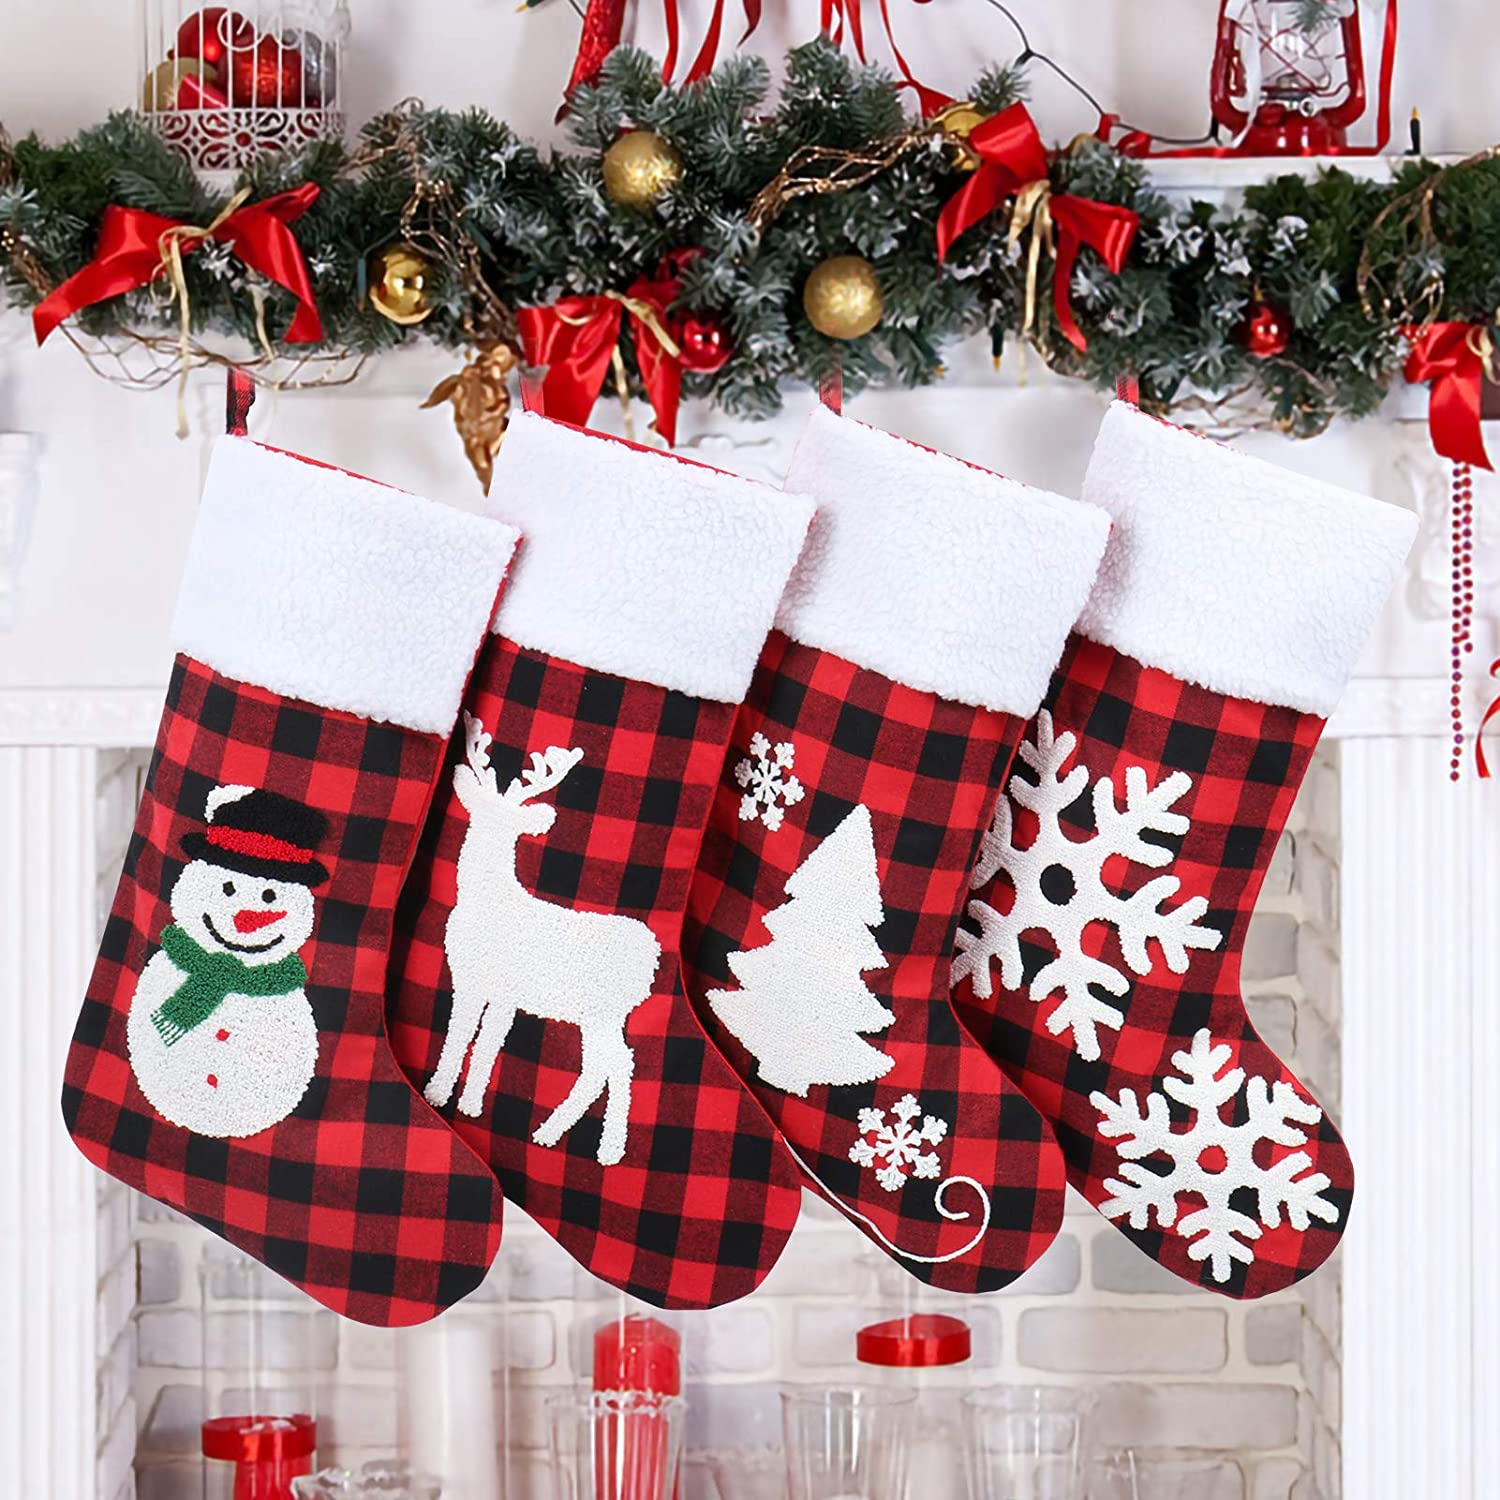 WINDUDU 4PCS Christmas Stocking 20 inch Large Buffalo Plaid Check with White Faux Plush Xmas Stockings for Fireplace Mantel Home Decor Tree Hanging Ornament (red)